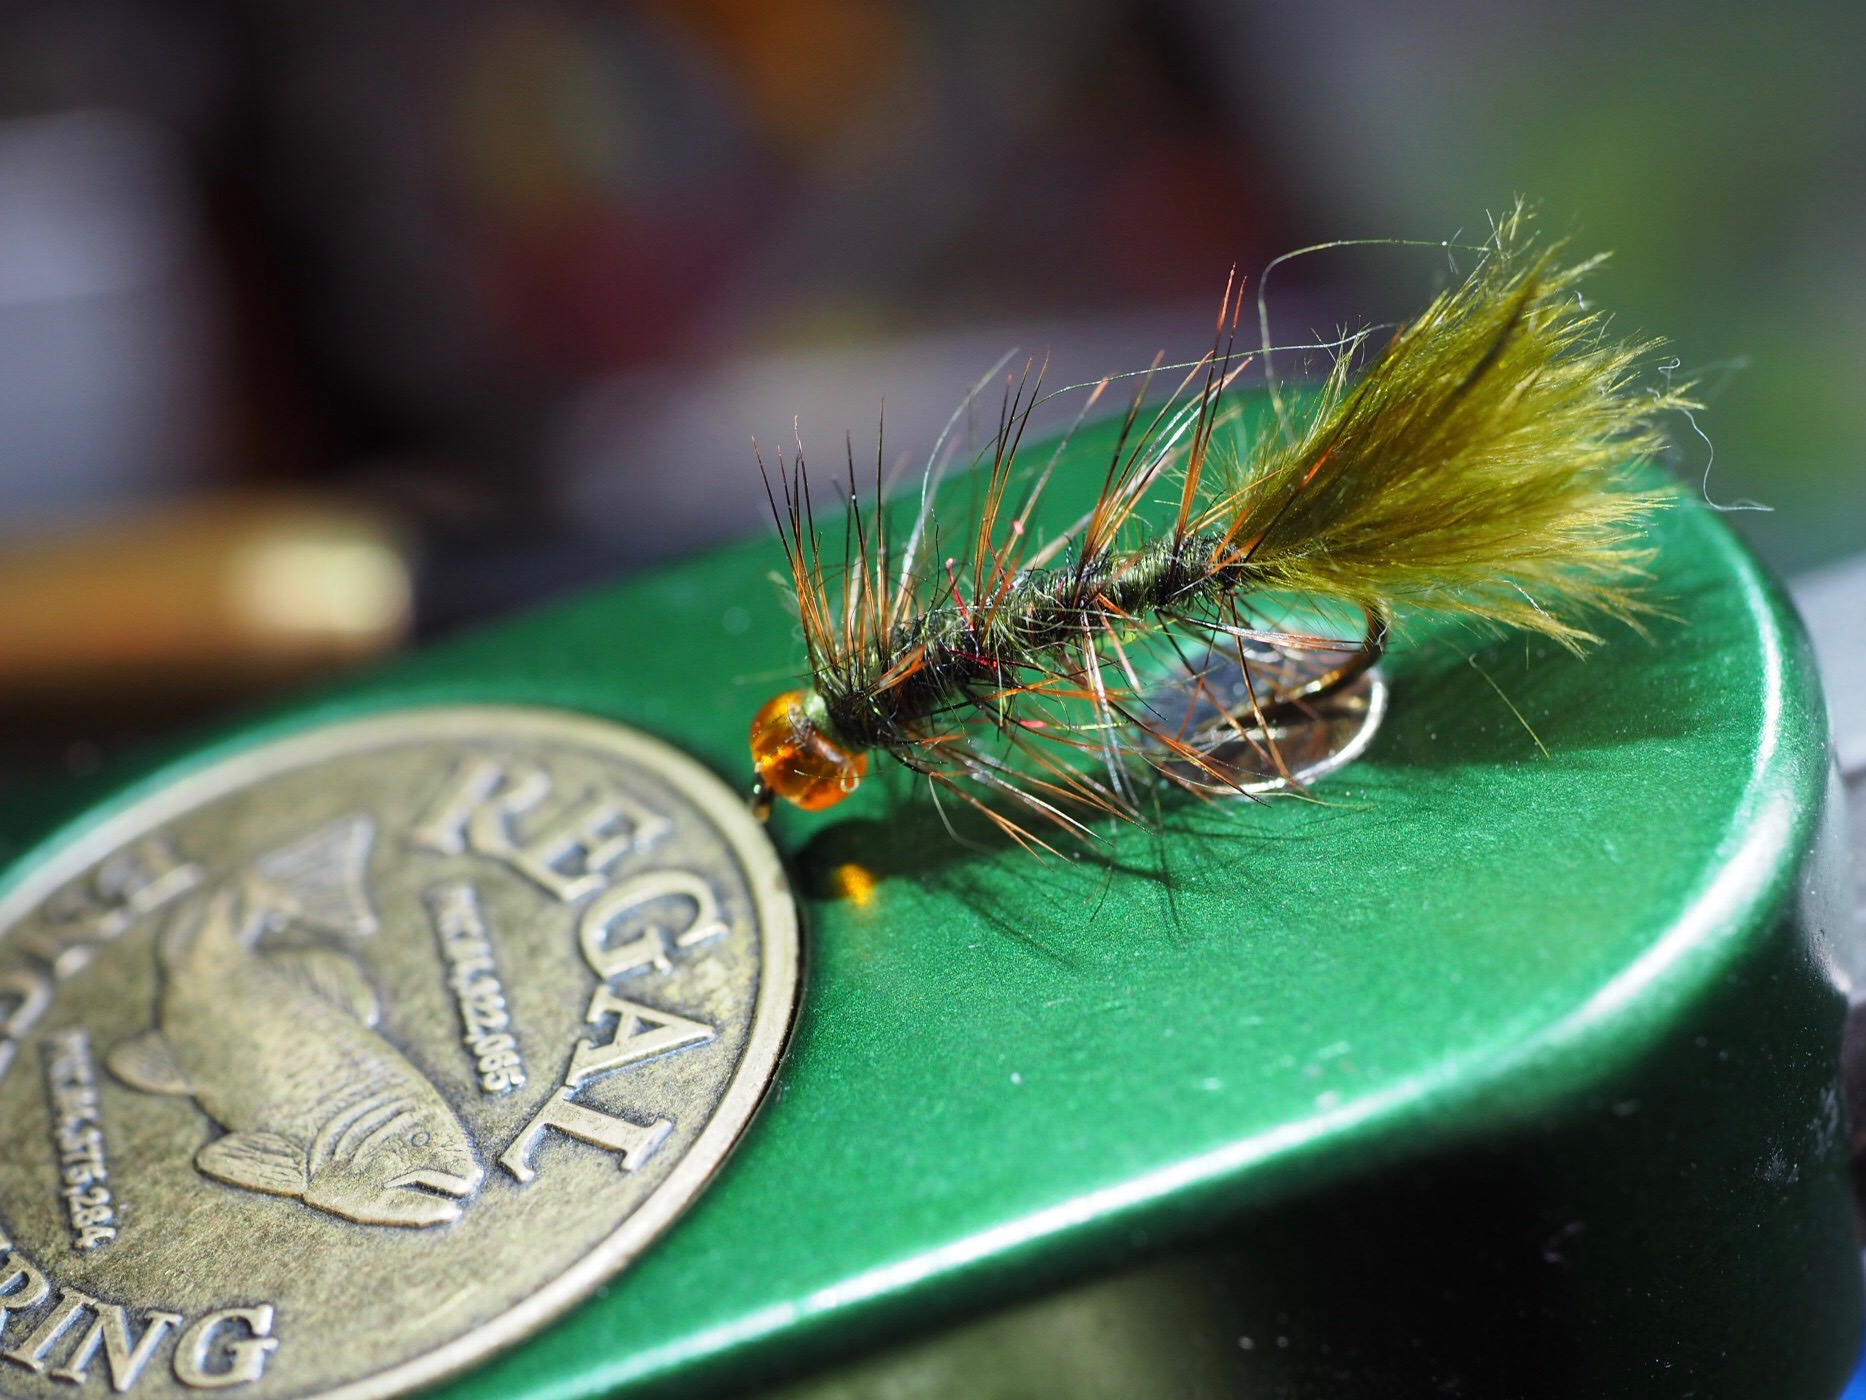 A scaled down Wooly Bugger is a great option if you want to fish a streamer.